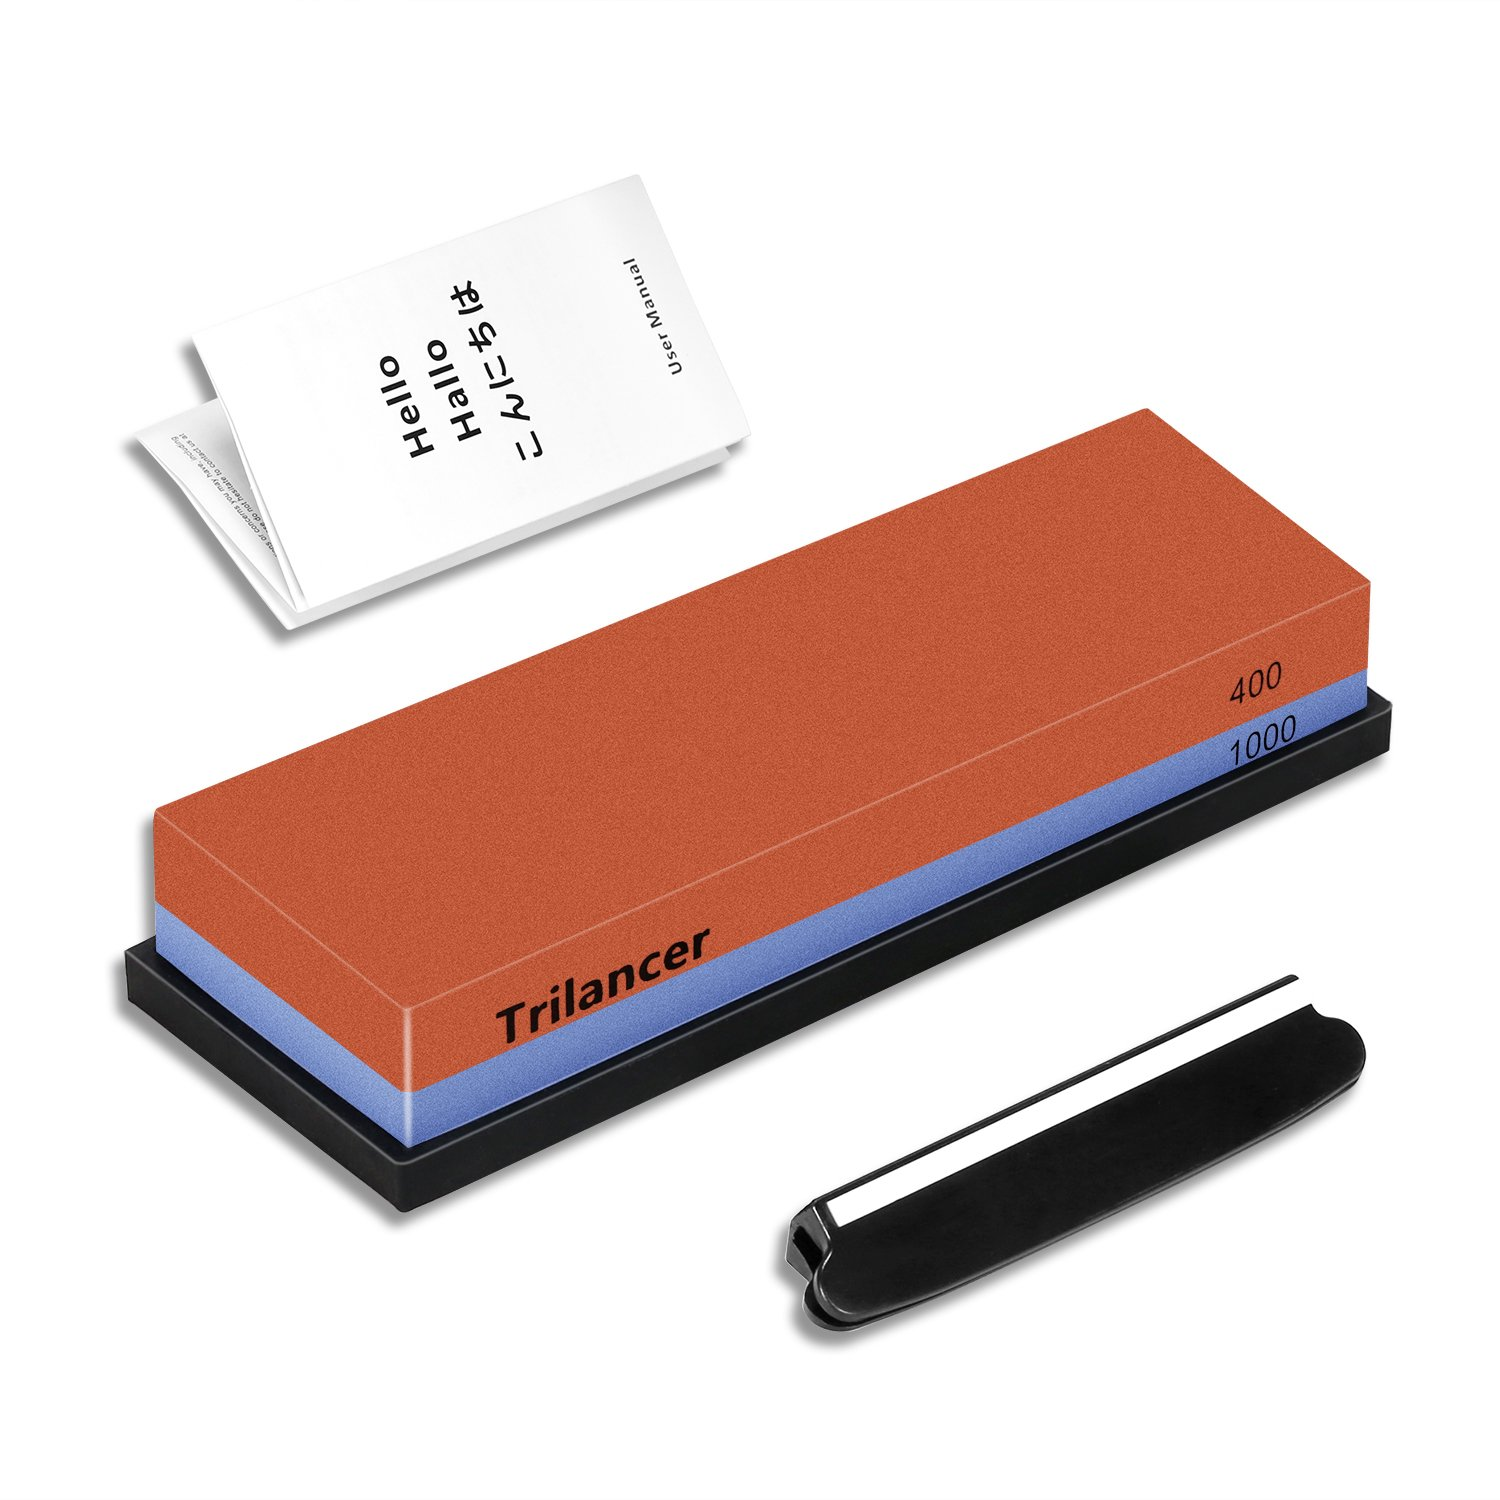 Whetstone Knife Sharpening Stone, 2-Sided 400/1000 Grit Knife Sharpener, Trilancer Japanese Style Waterstone Kit, Angle Guide and Rubber Base Included